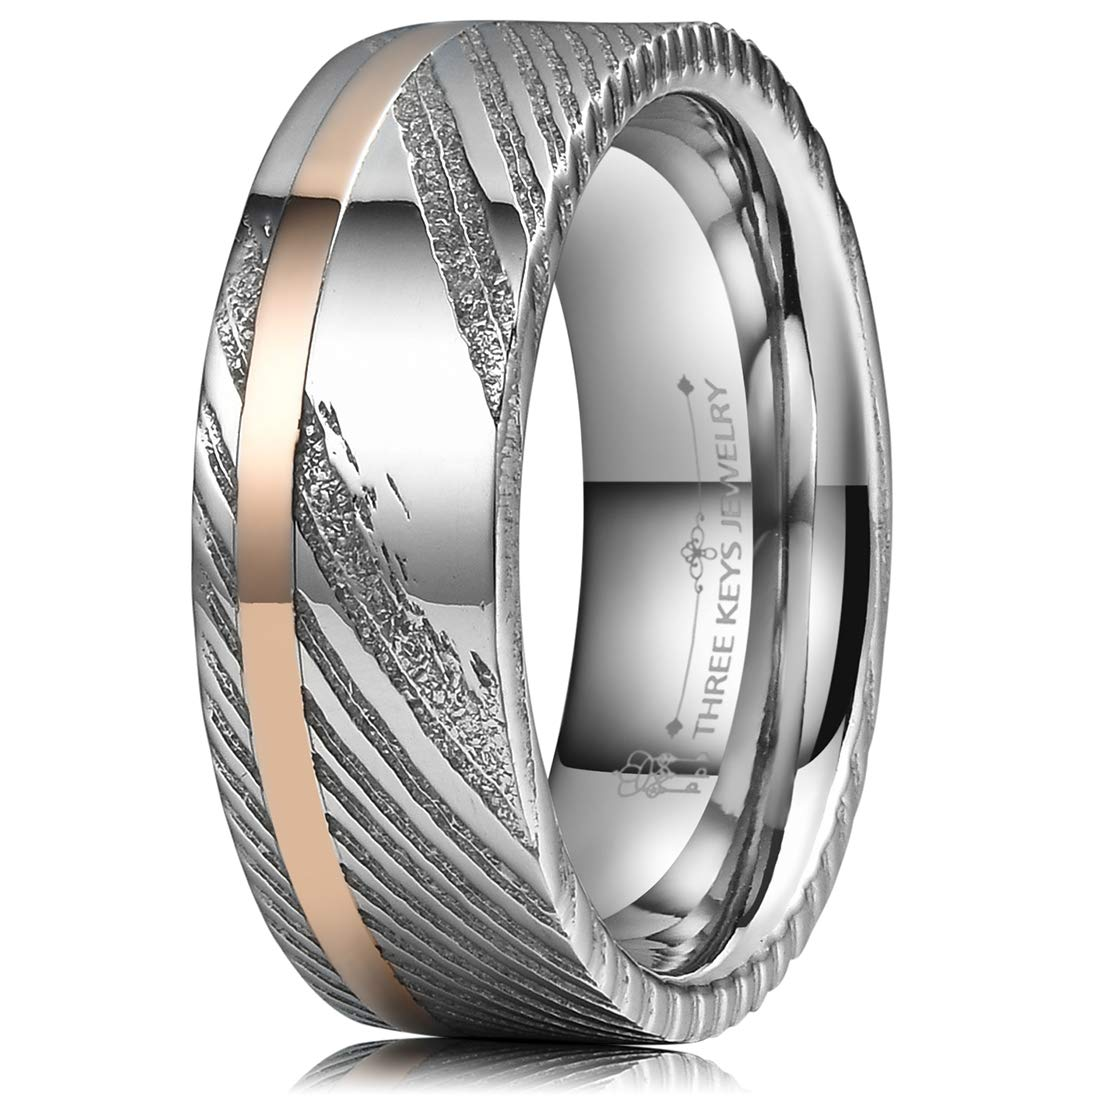 Three Keys Jewelry 8mm Damascus Steel Mens Wedding Ring Domed Wood Grain Rose Gold Offset Inlay Wedding Band Engagement Ring Size 10.5